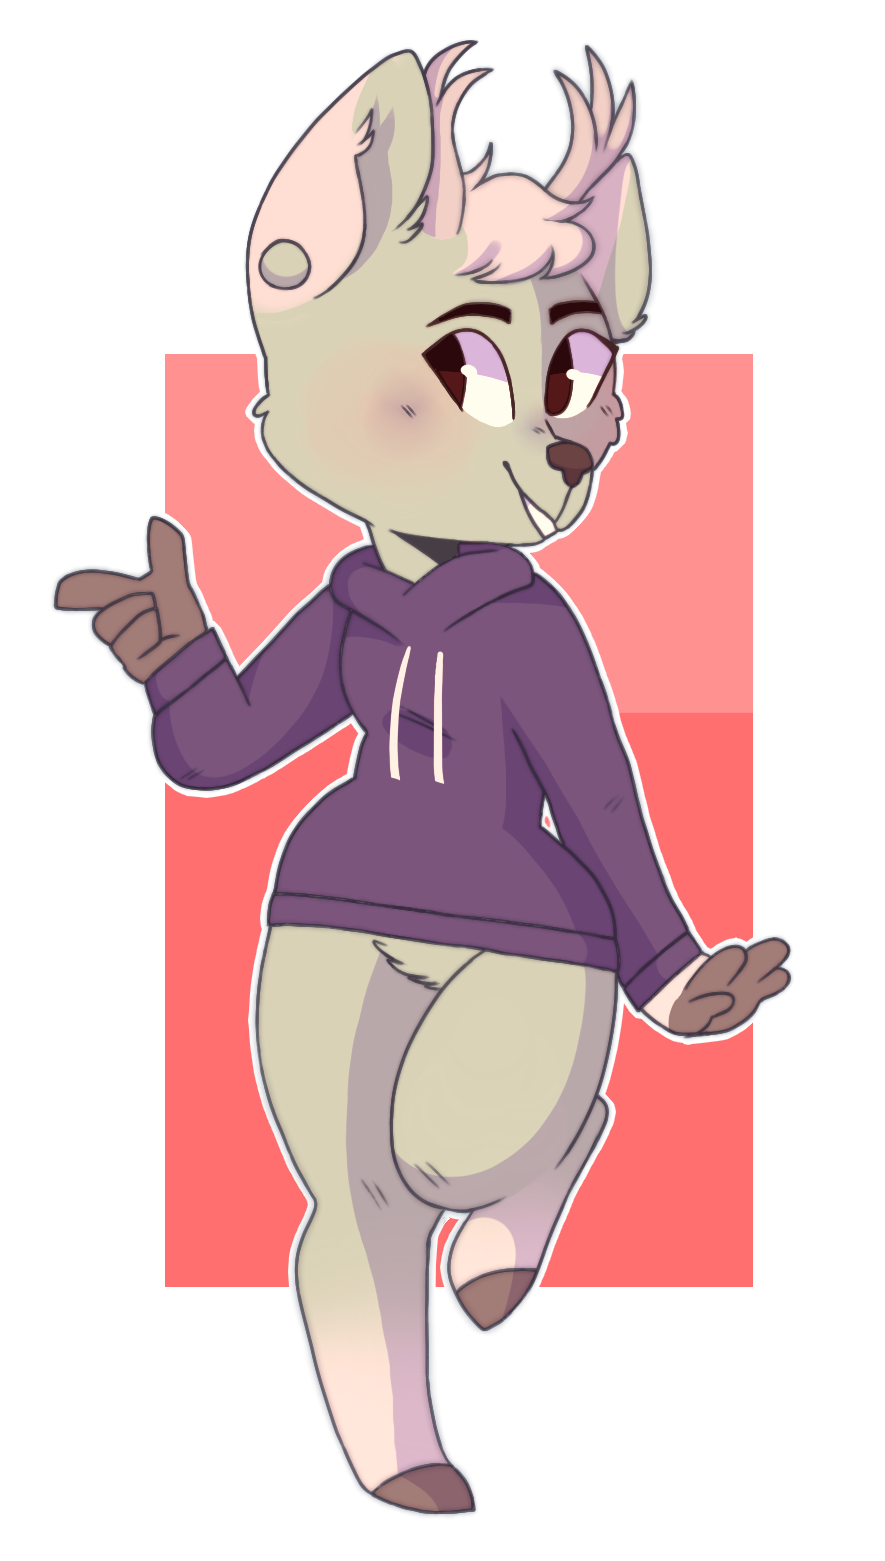 deer_by_sushibes-dc1kw6g.png